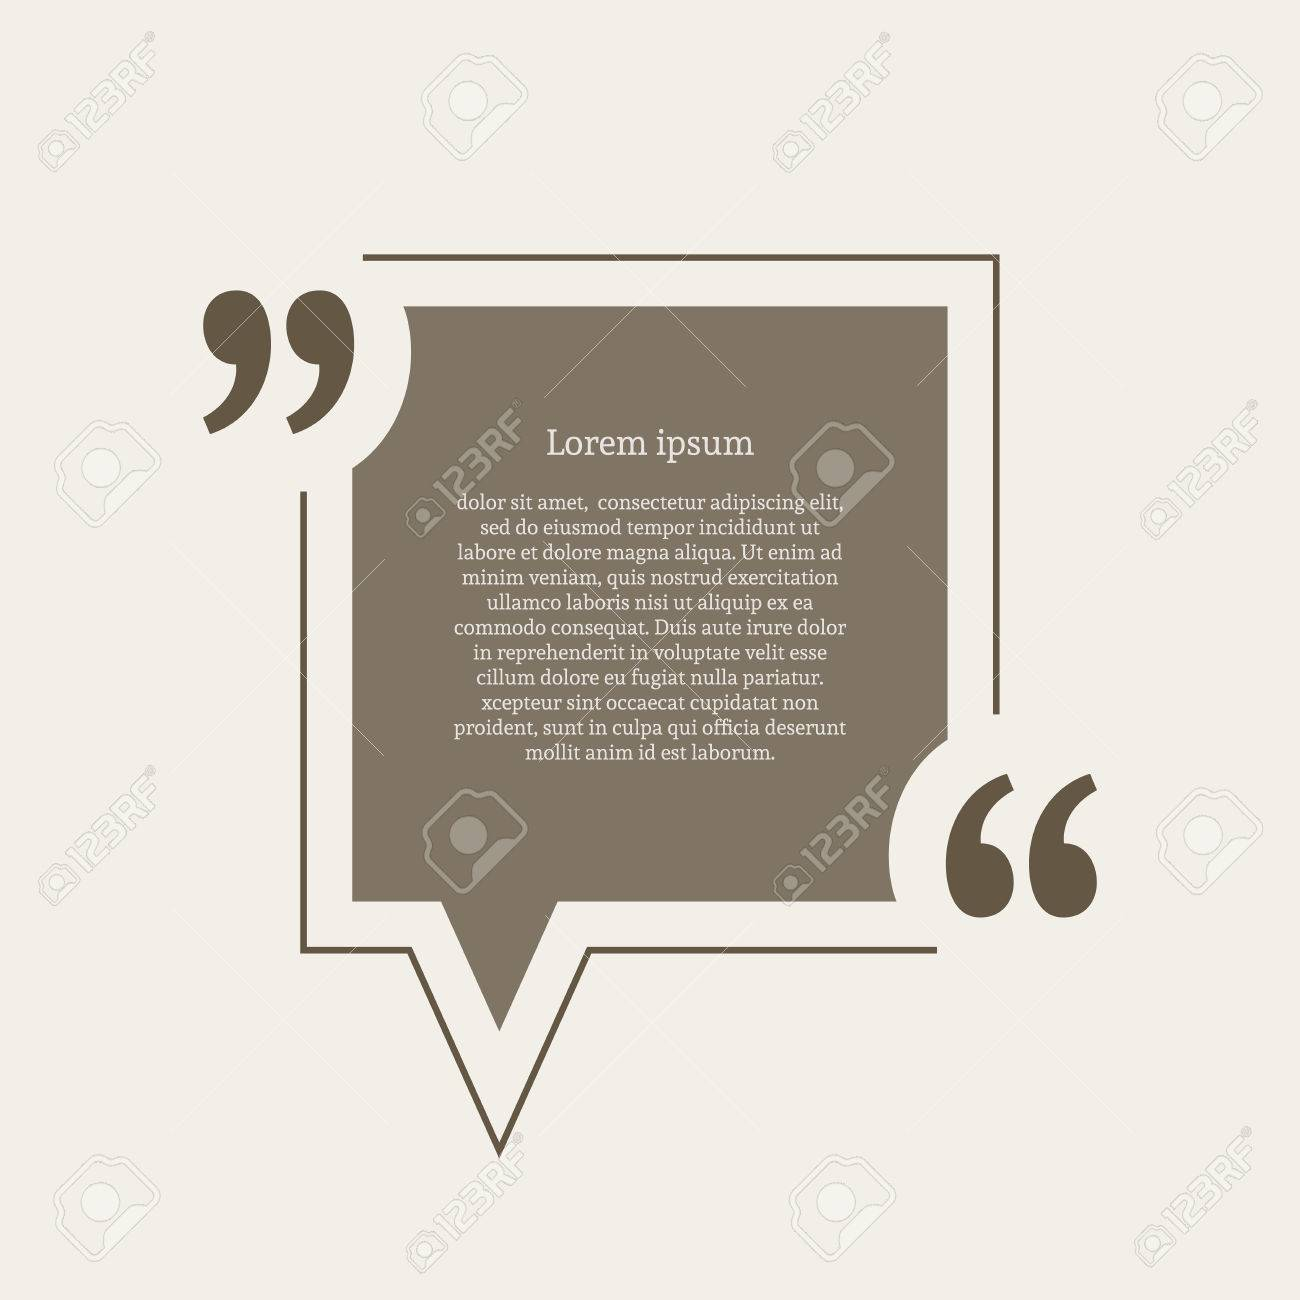 Quotation mark speech bubble empty quote blank citation template quotation mark speech bubble empty quote blank citation template square design element for business reheart Images